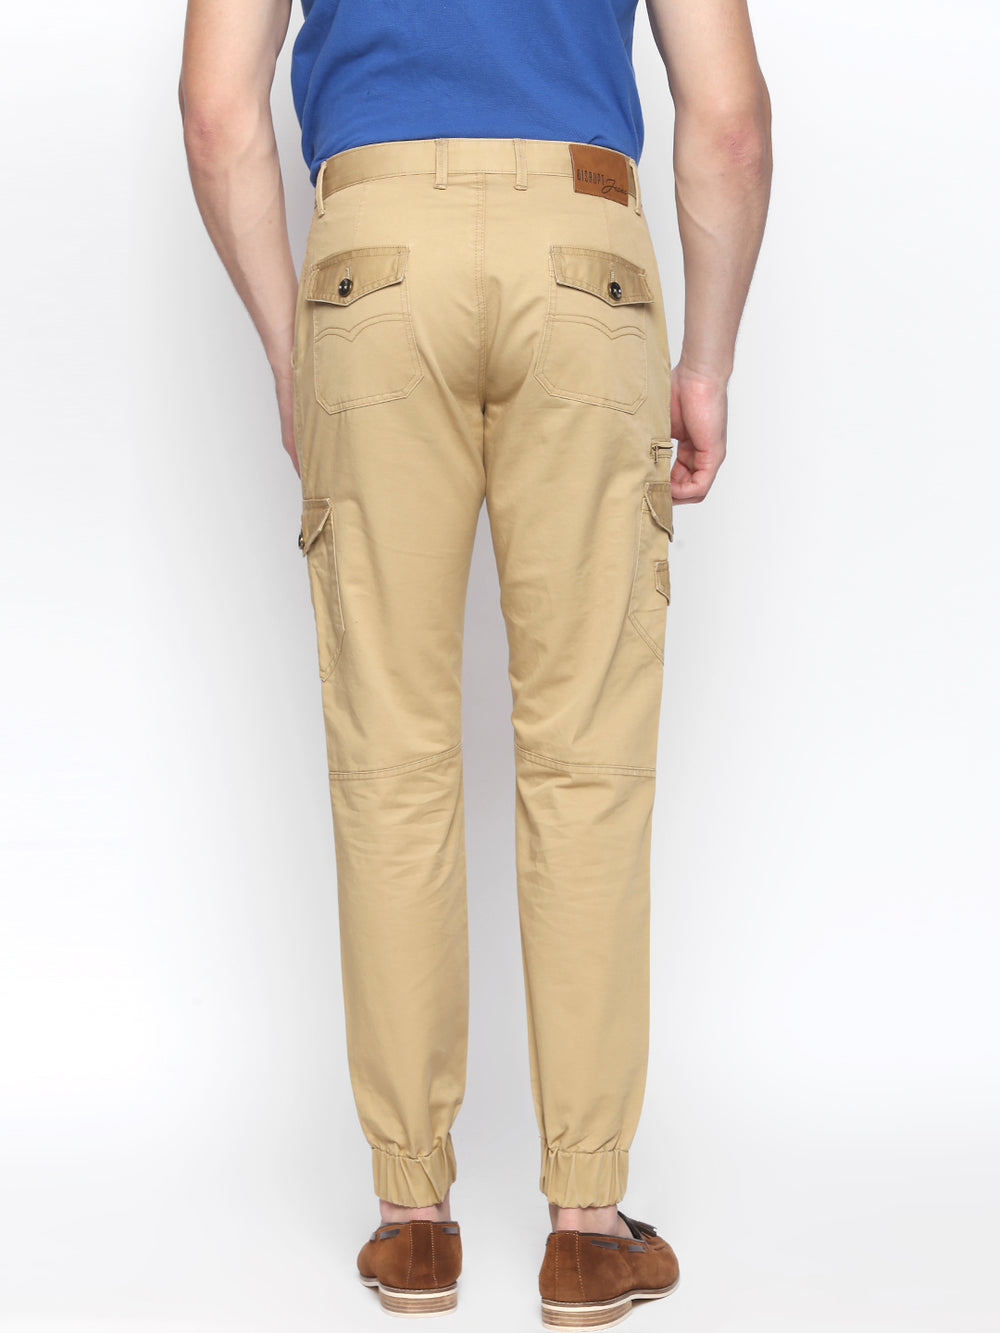 Disrupt Khaki 100% Cotton Regular Fit Joggers For Men's